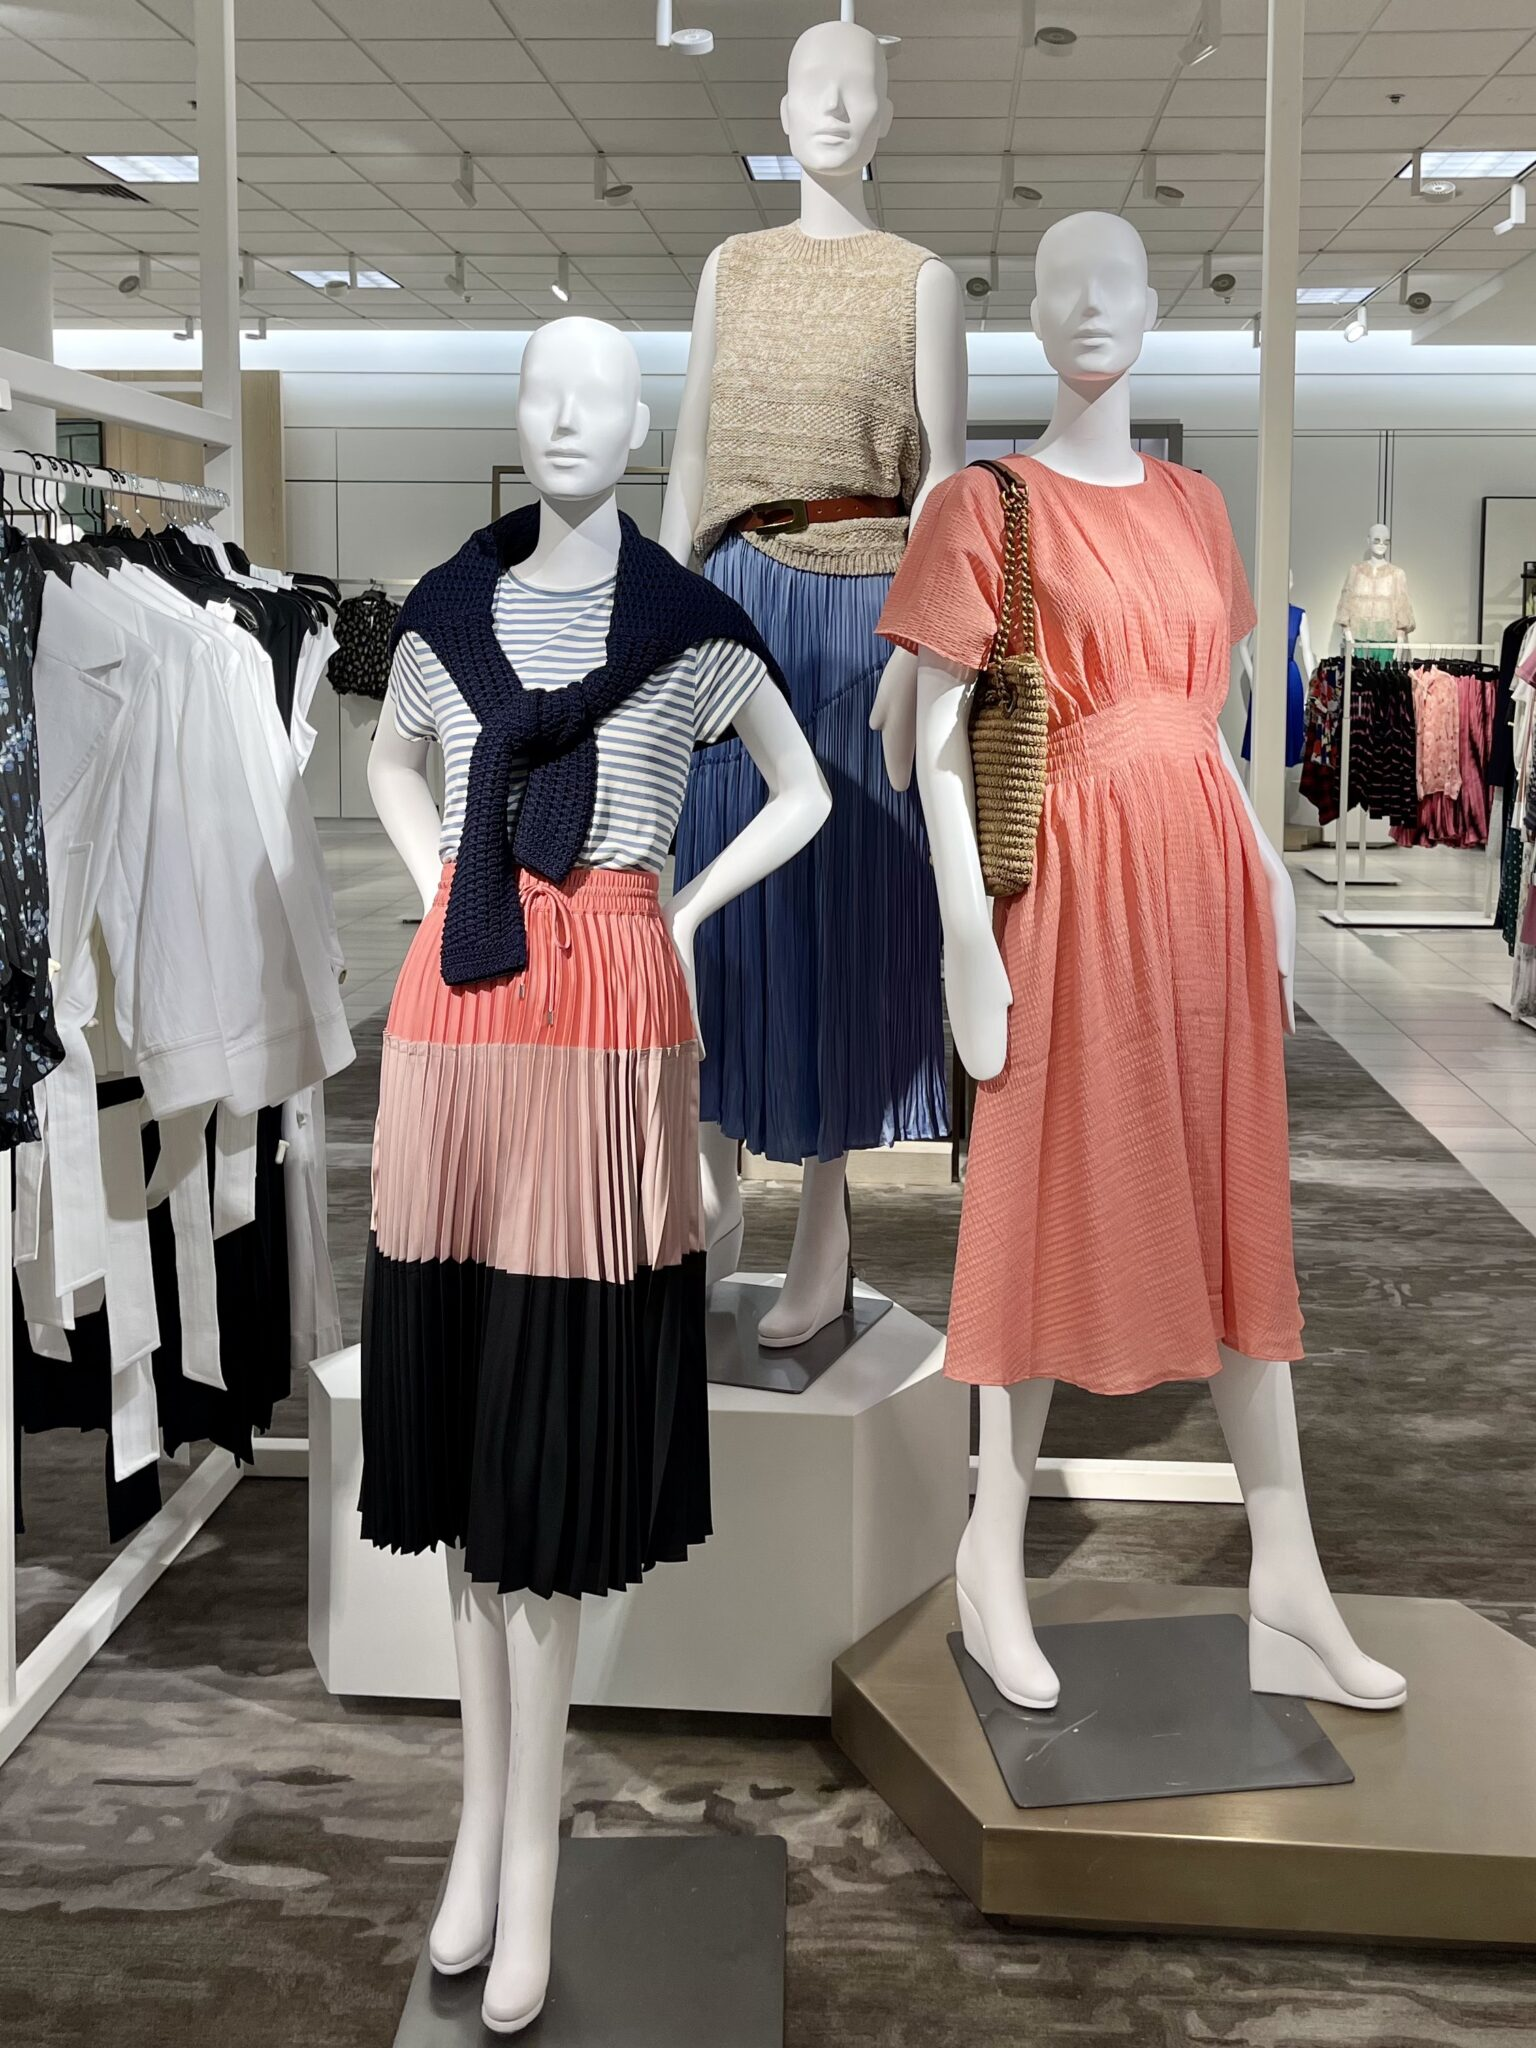 Would You Wear It - Skirts & Dresses